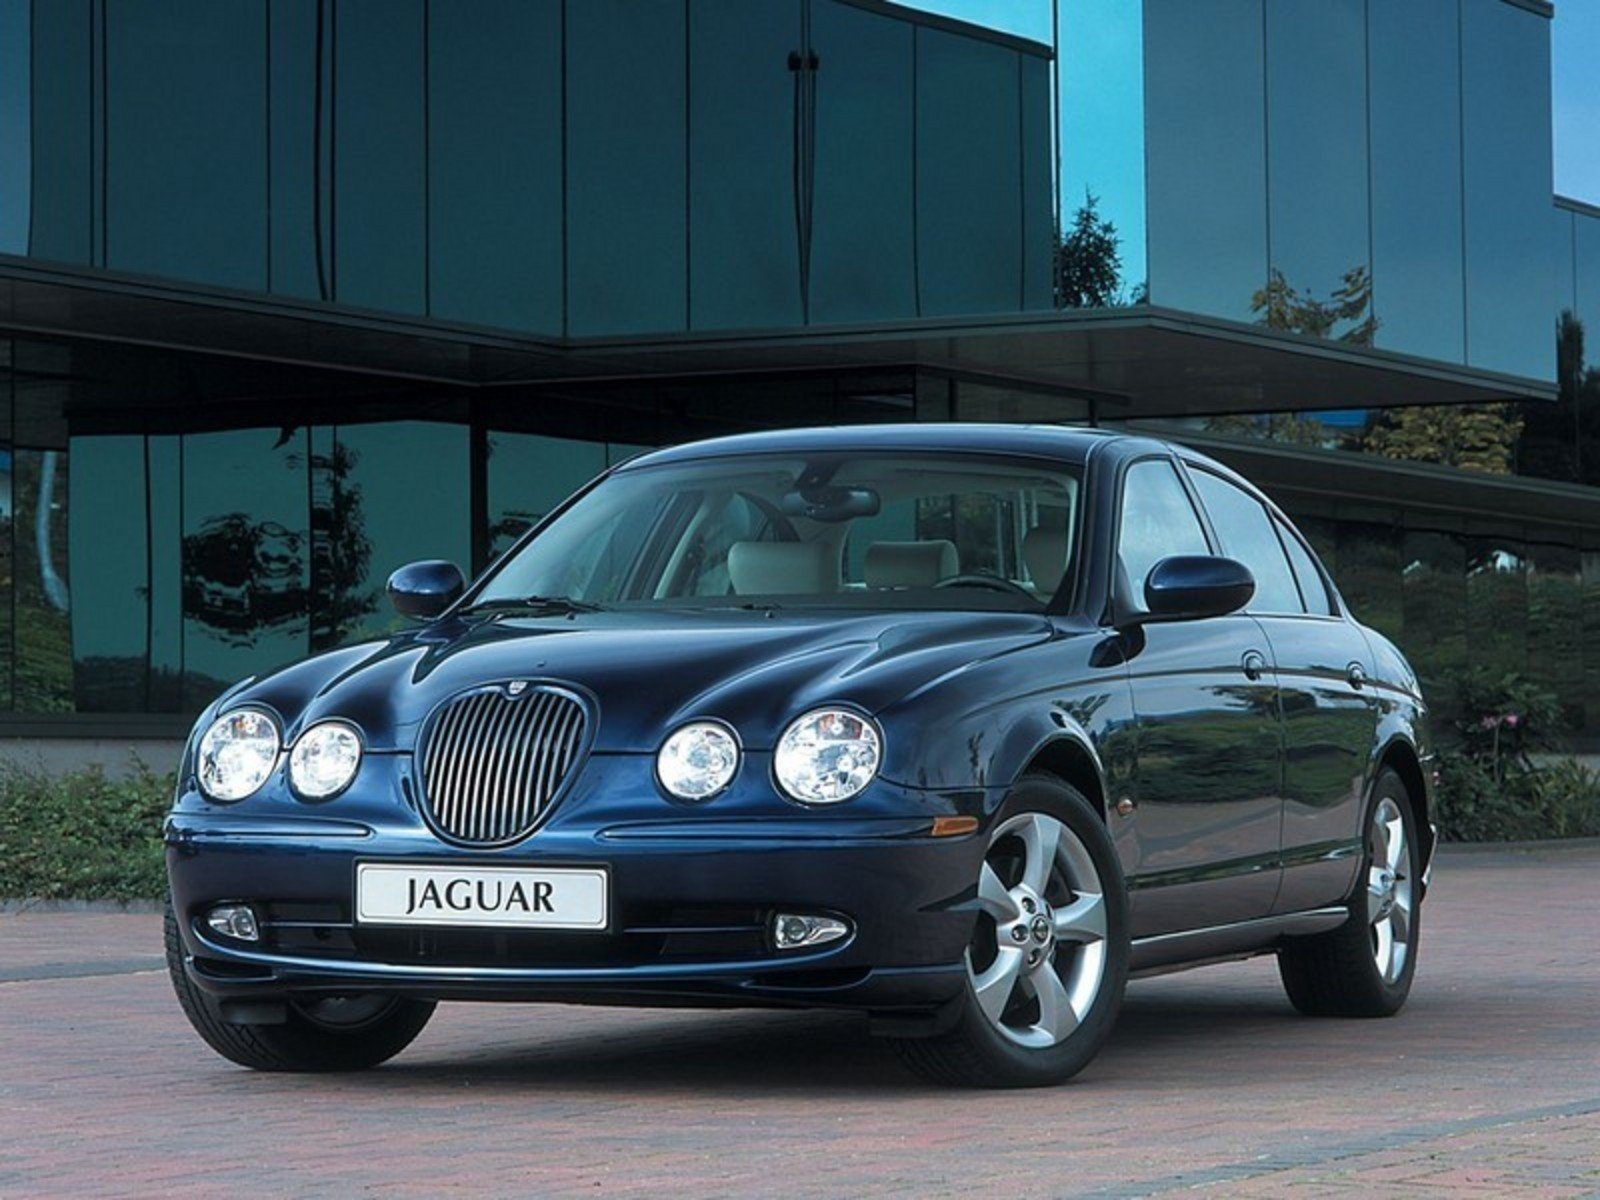 2004 jaguar s type picture 24826 car review top speed. Black Bedroom Furniture Sets. Home Design Ideas